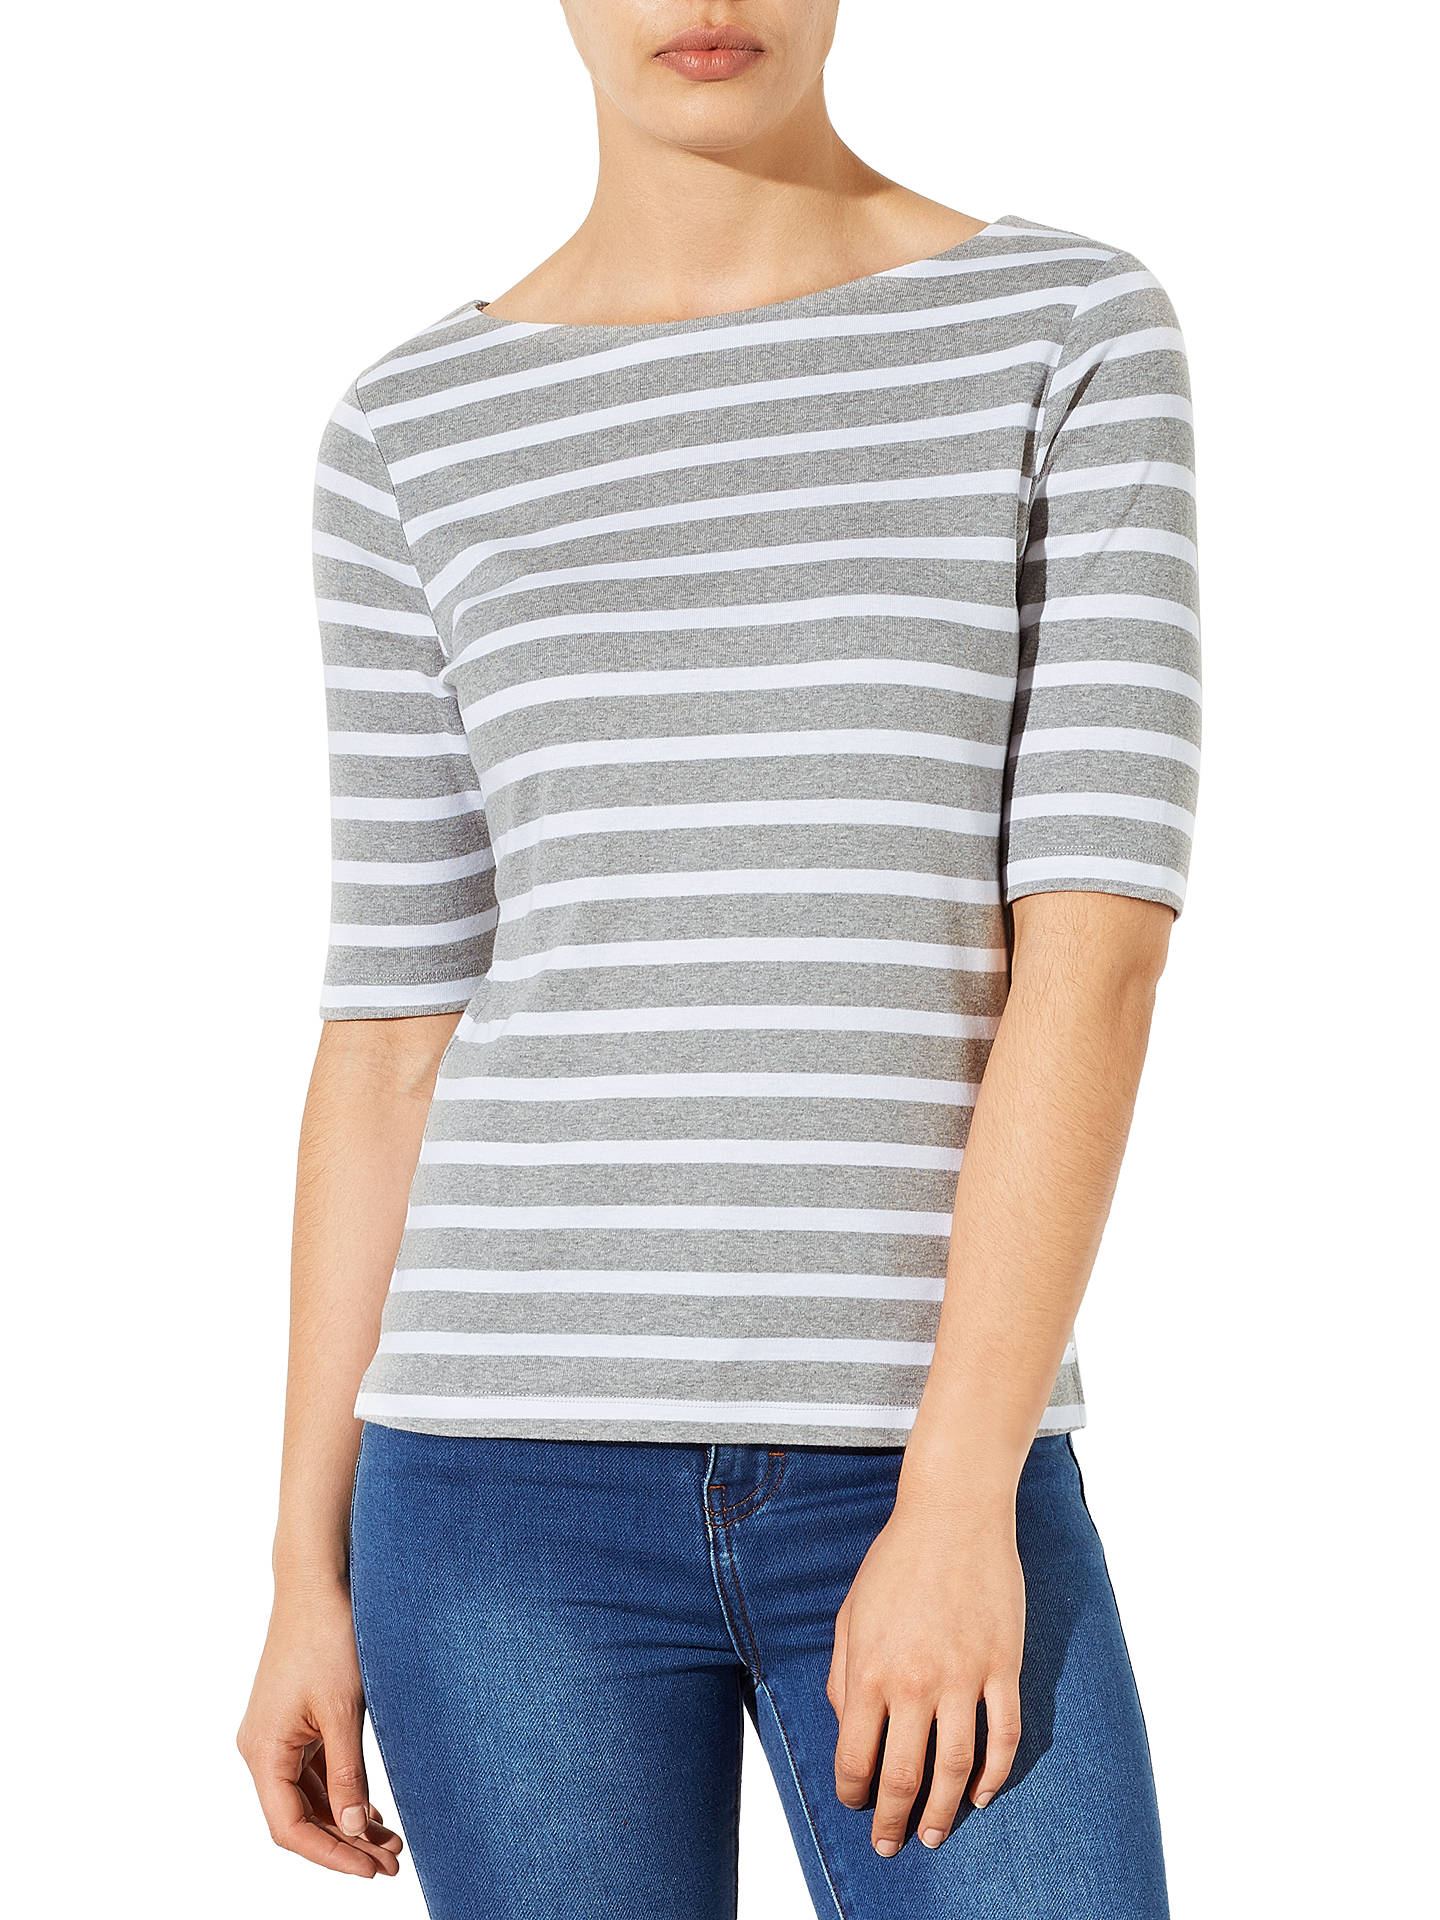 BuyJohn Lewis & Partners Half-Sleeve Breton Stripe Top, Grey/White, 8 Online at johnlewis.com